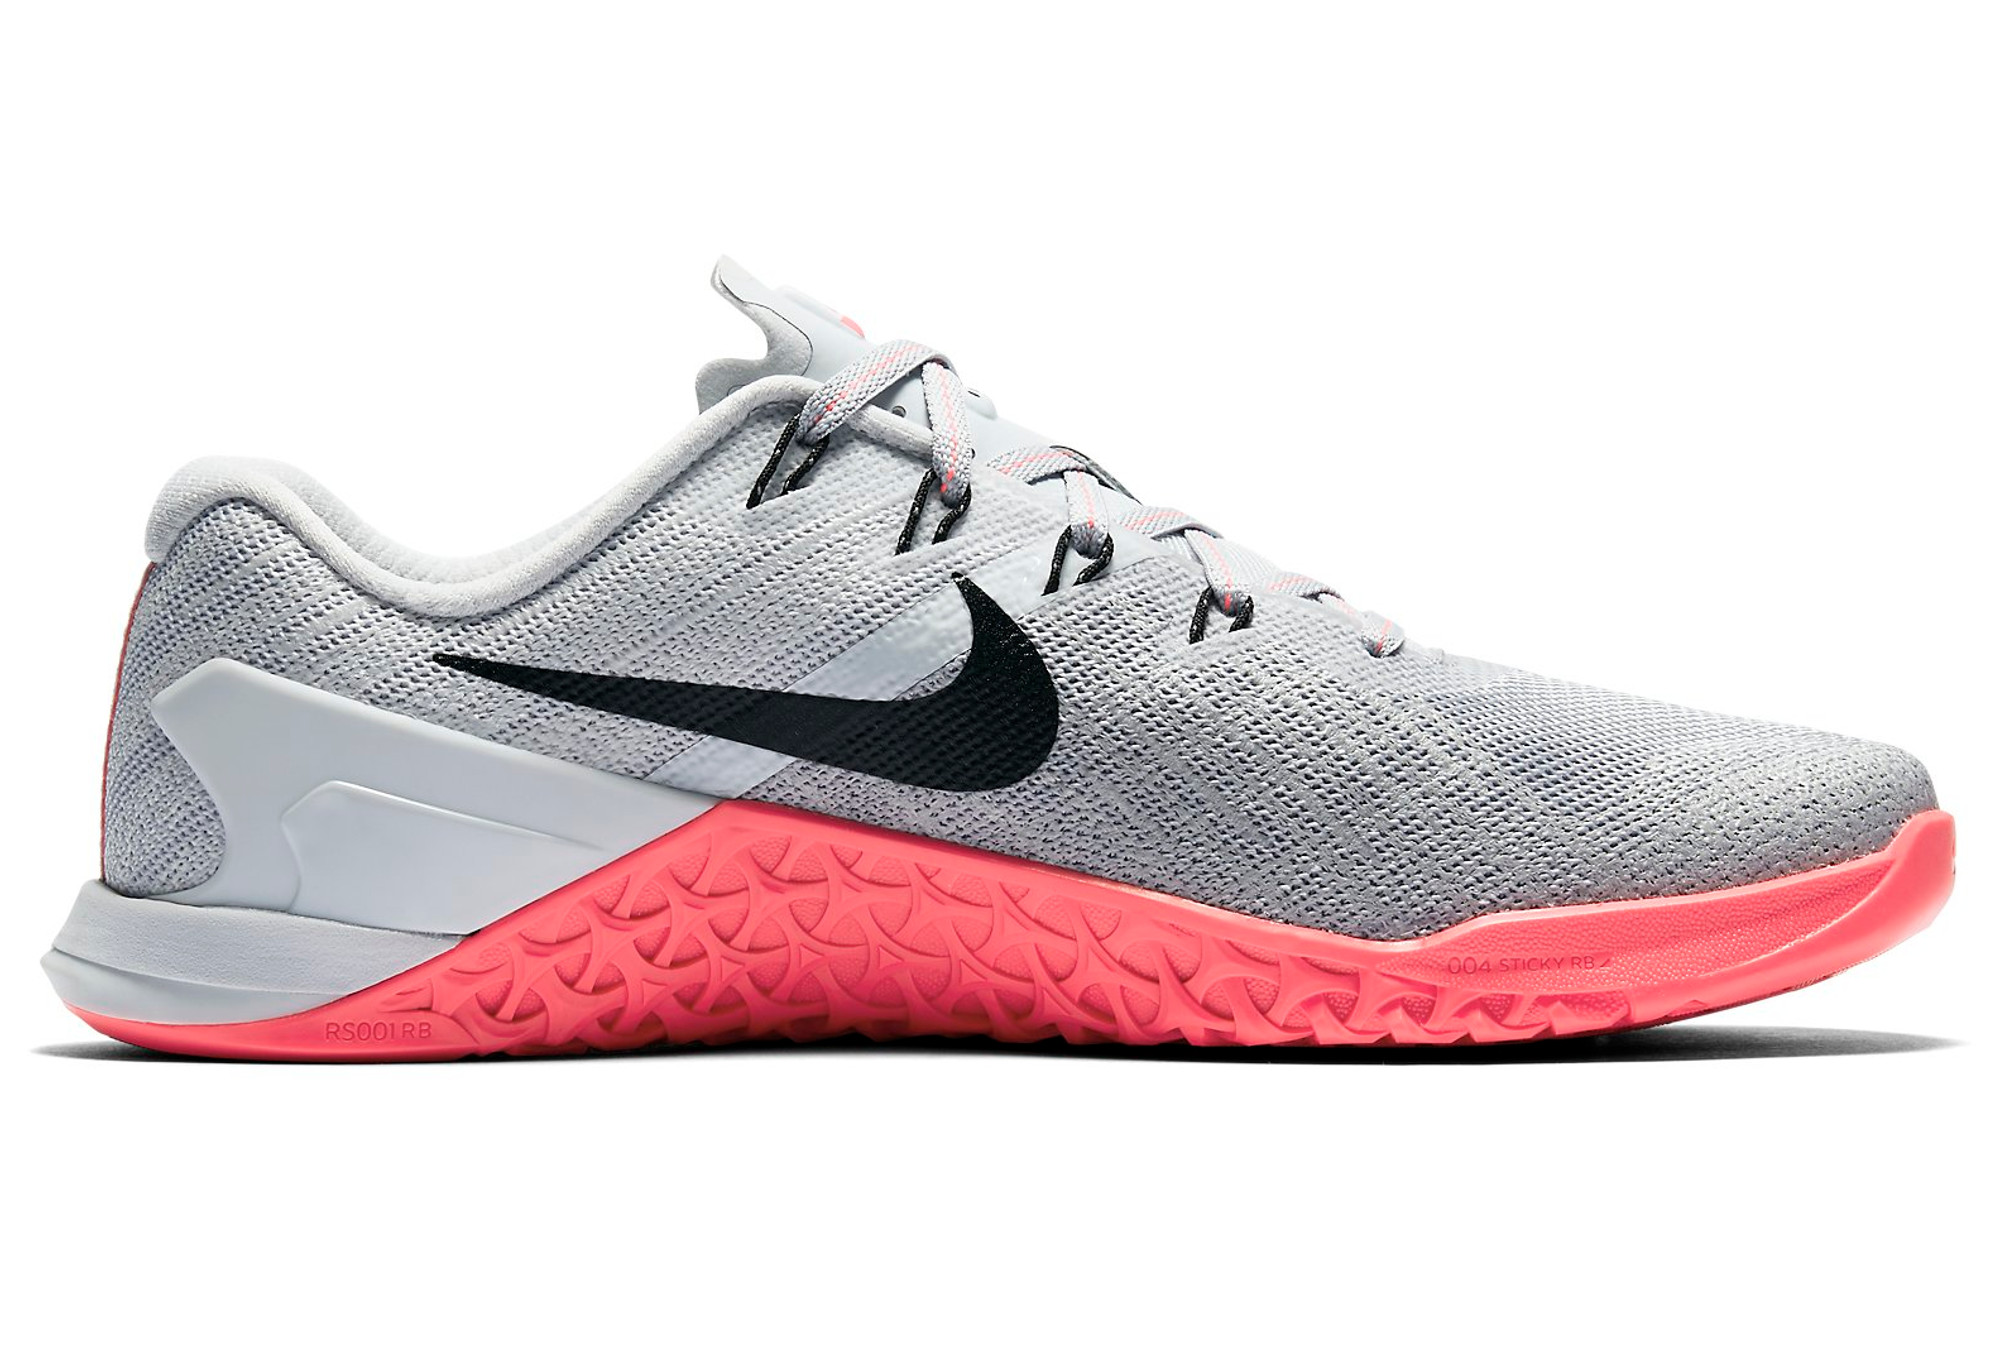 3 Cross Training Gris De Metcon Rose Chaussures Femme Nike zwPZYq